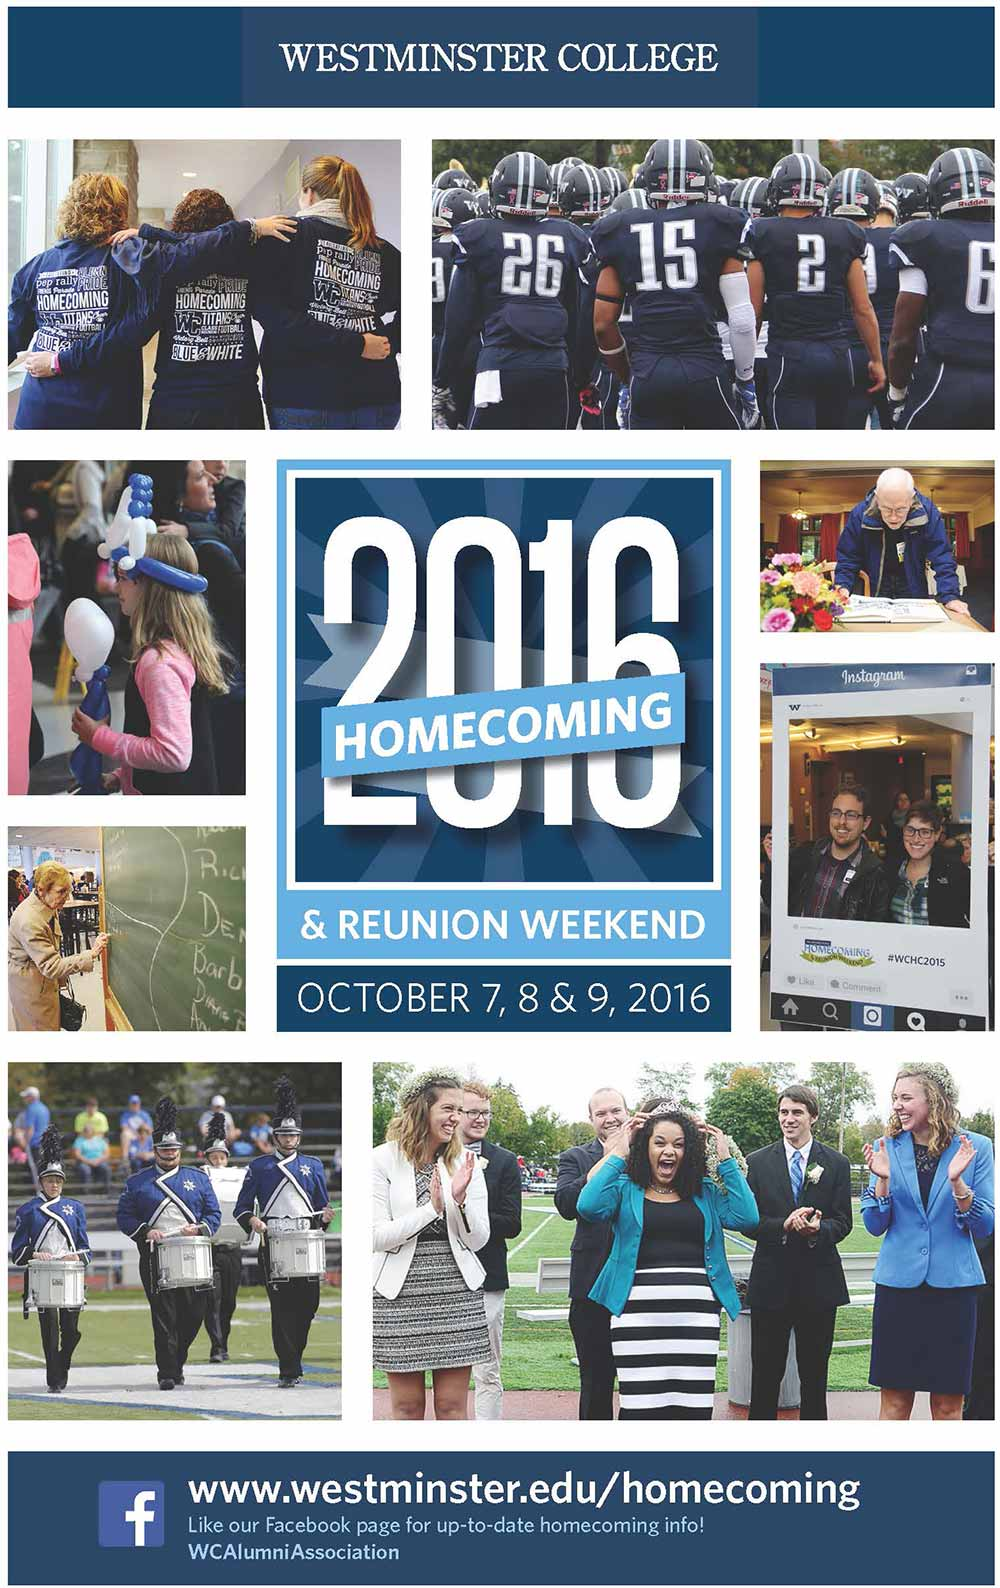 Homecoming & Reunion Weekend 2016 brochure